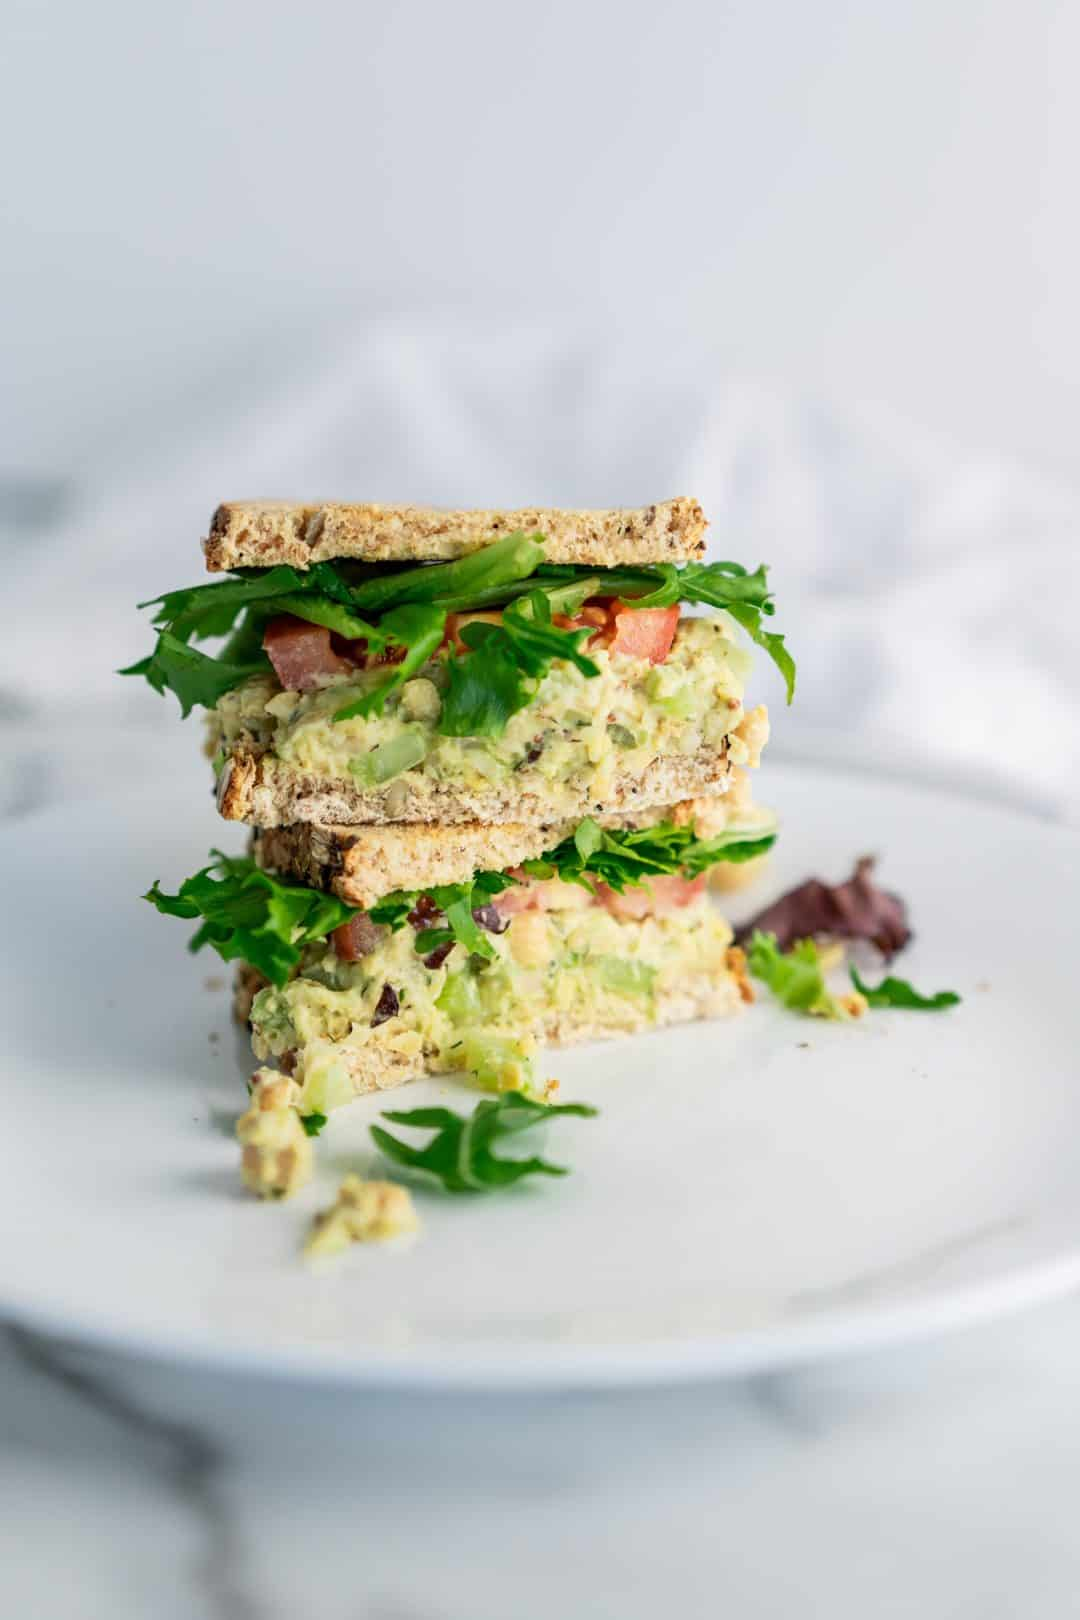 Chickpea salad, arugula, and slice of tomato between whole grain toast, sandwich halves open and stacked